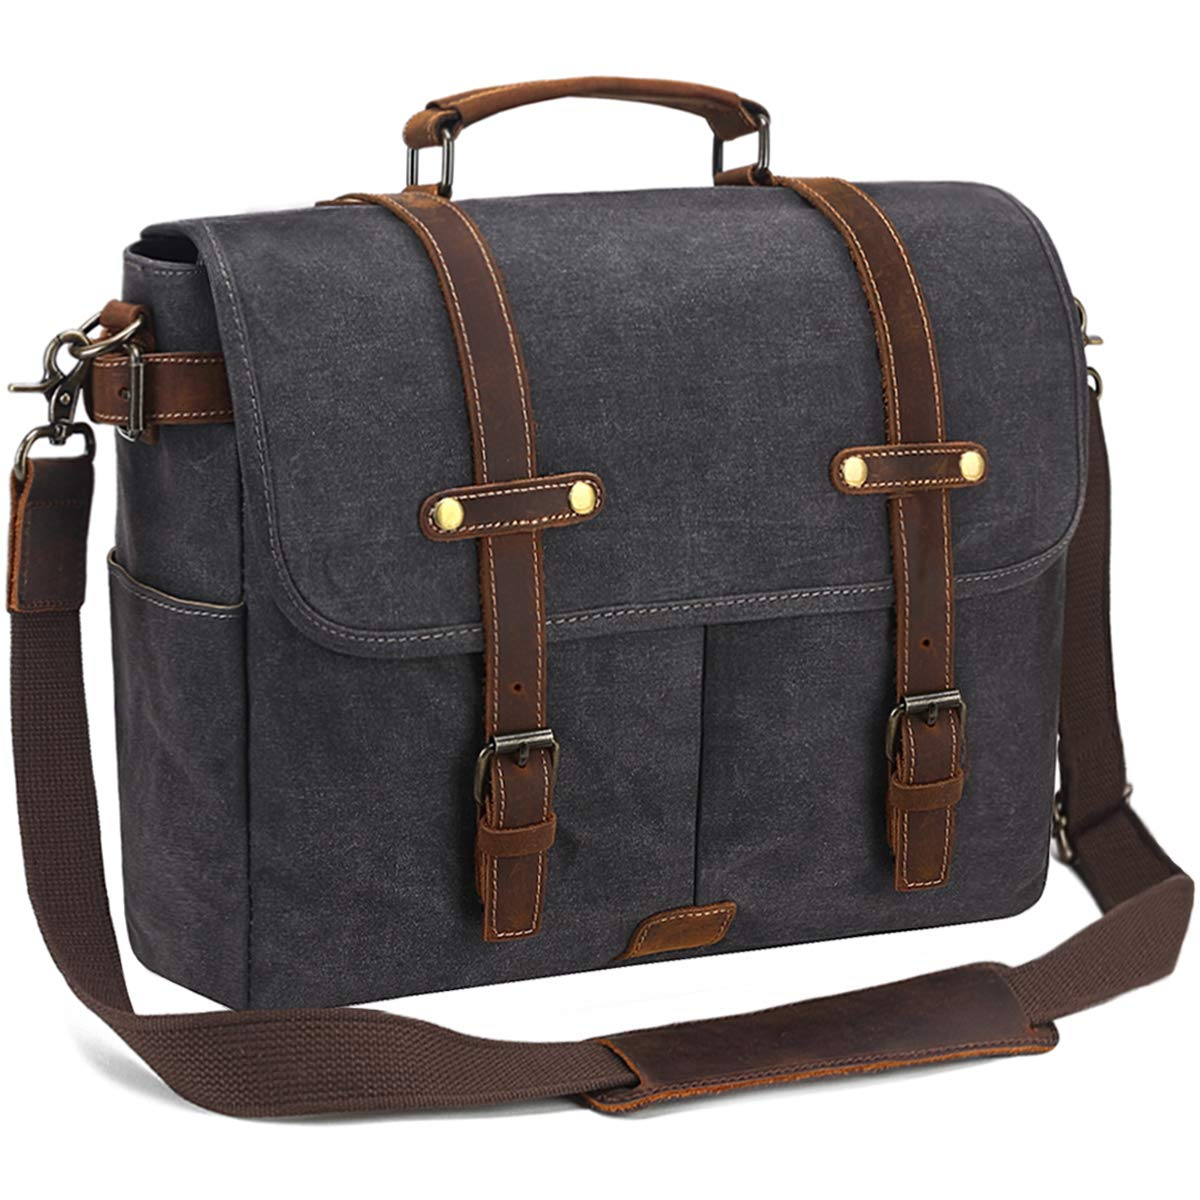 SOAEON Mens Messenger Bag,Laptop Bag 15.6 inch,Waterproof Vintage Canvas Briefcase, Leather Computer Bag for Business&School Travel Grey by SOAEON (Image #2)